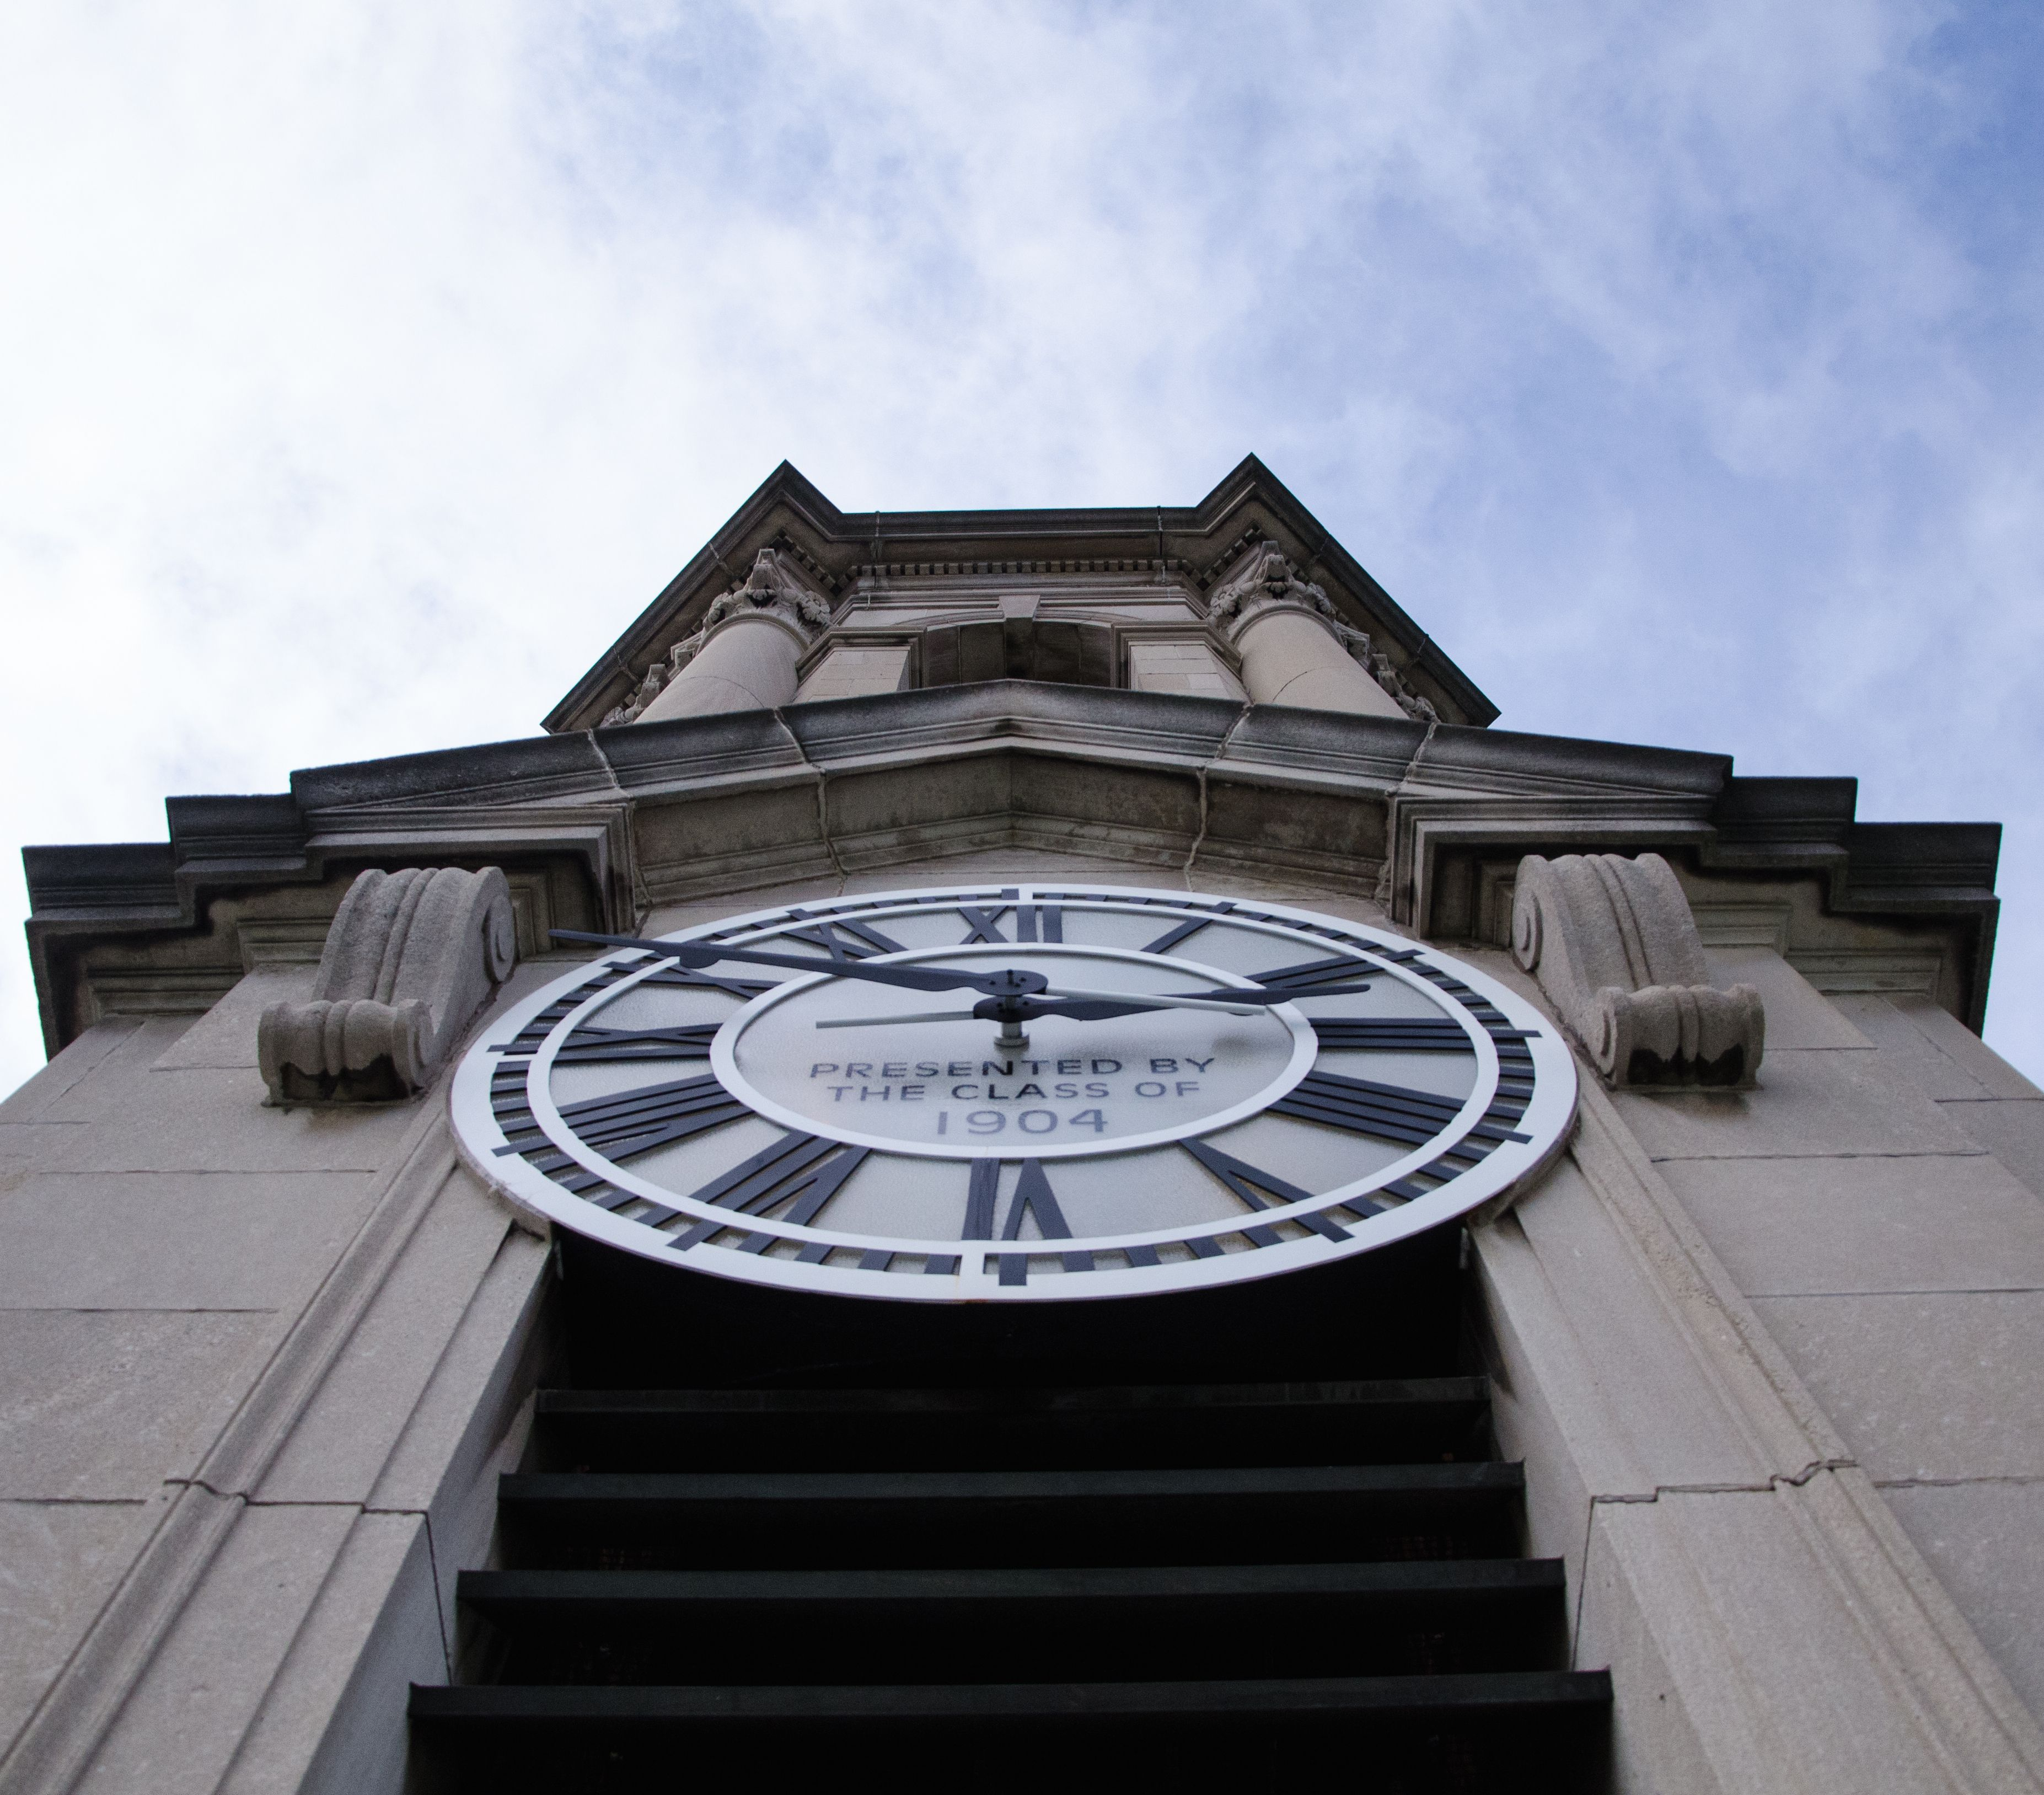 In October, students had a chance to climb the narrow stairs to the bell tower and get a close look at the Old Main clock seen here from just below it.